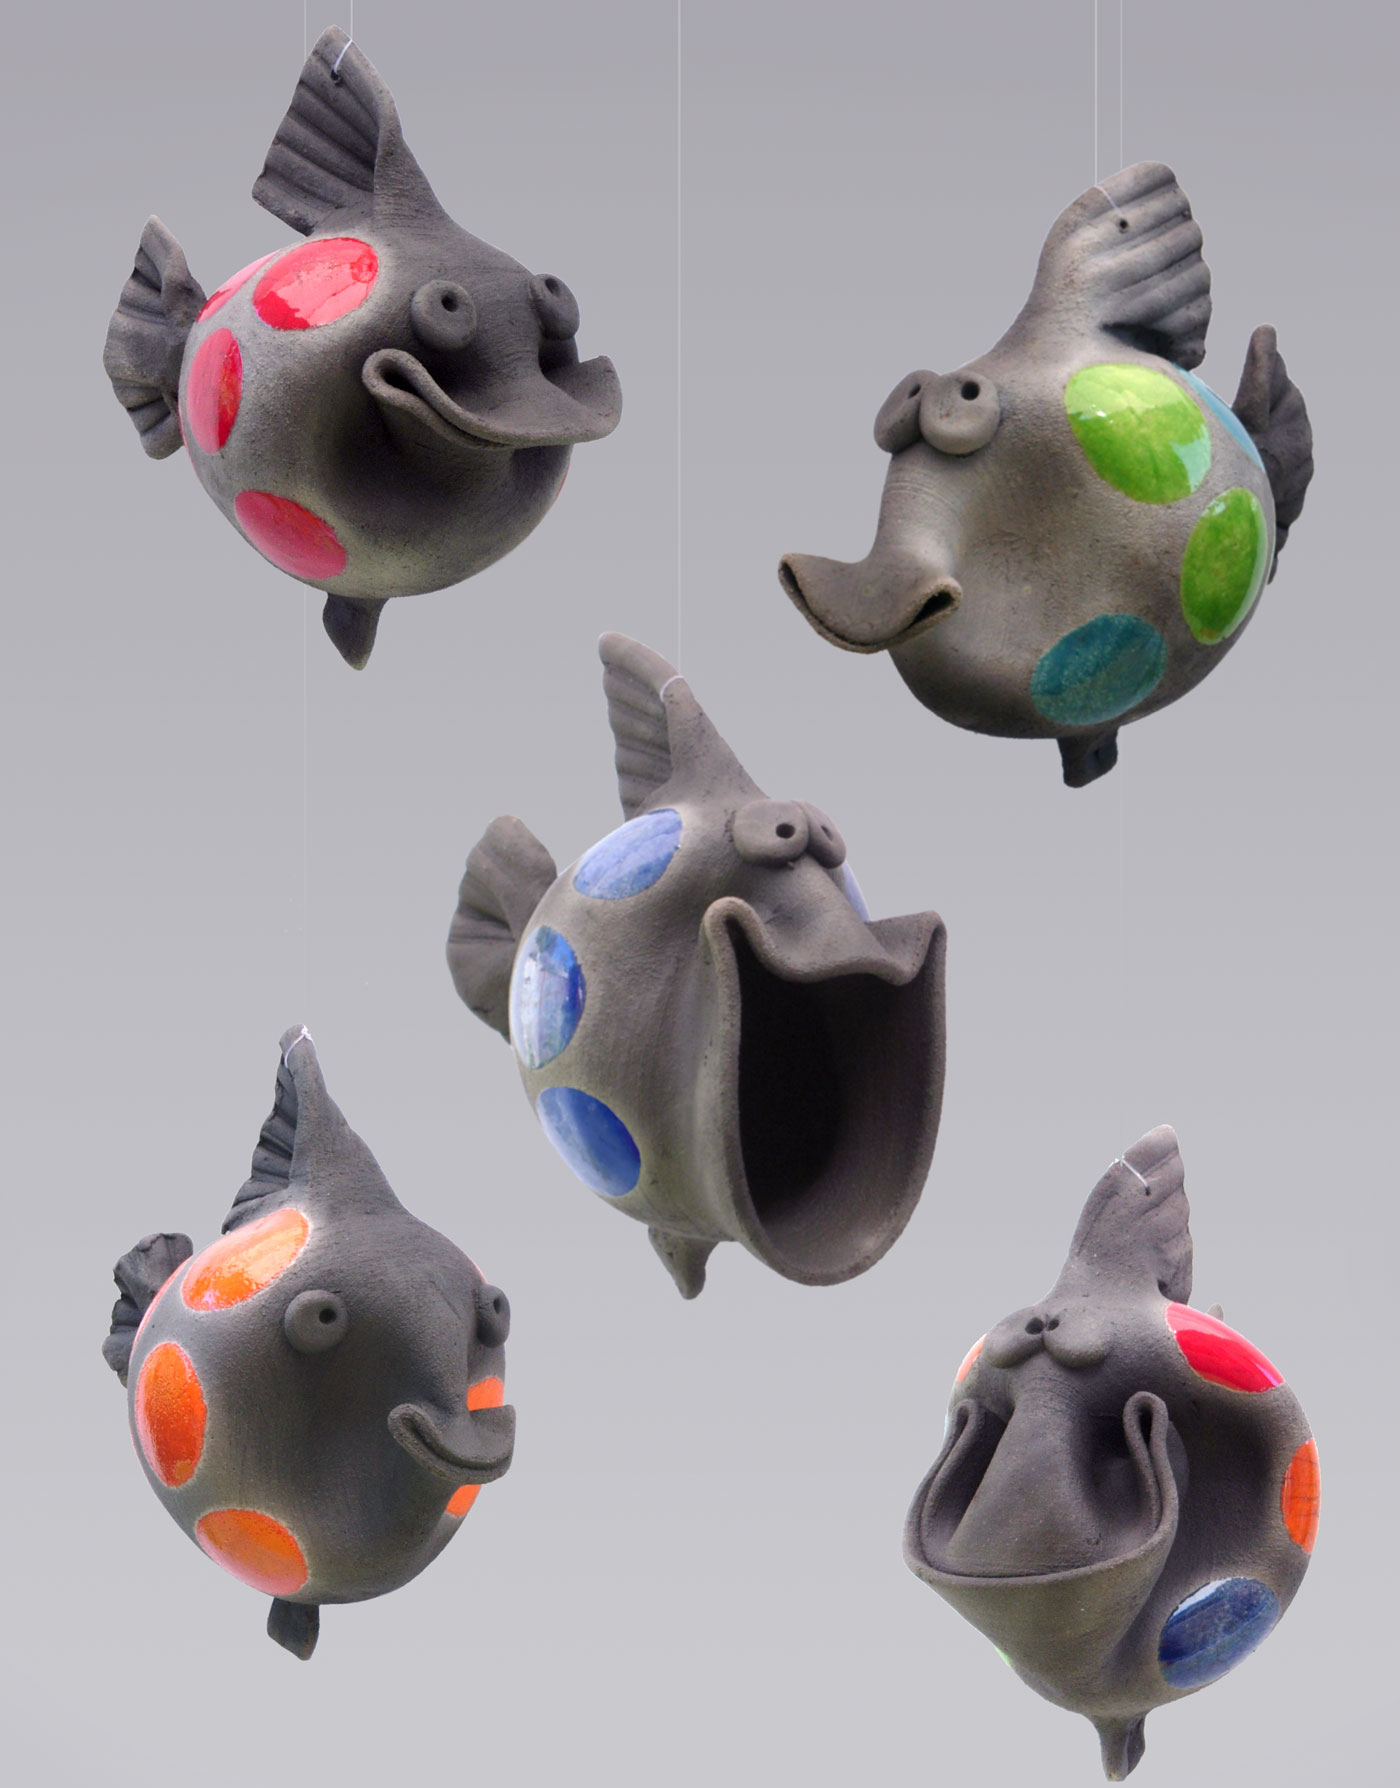 School of Raku Ceramic Fish